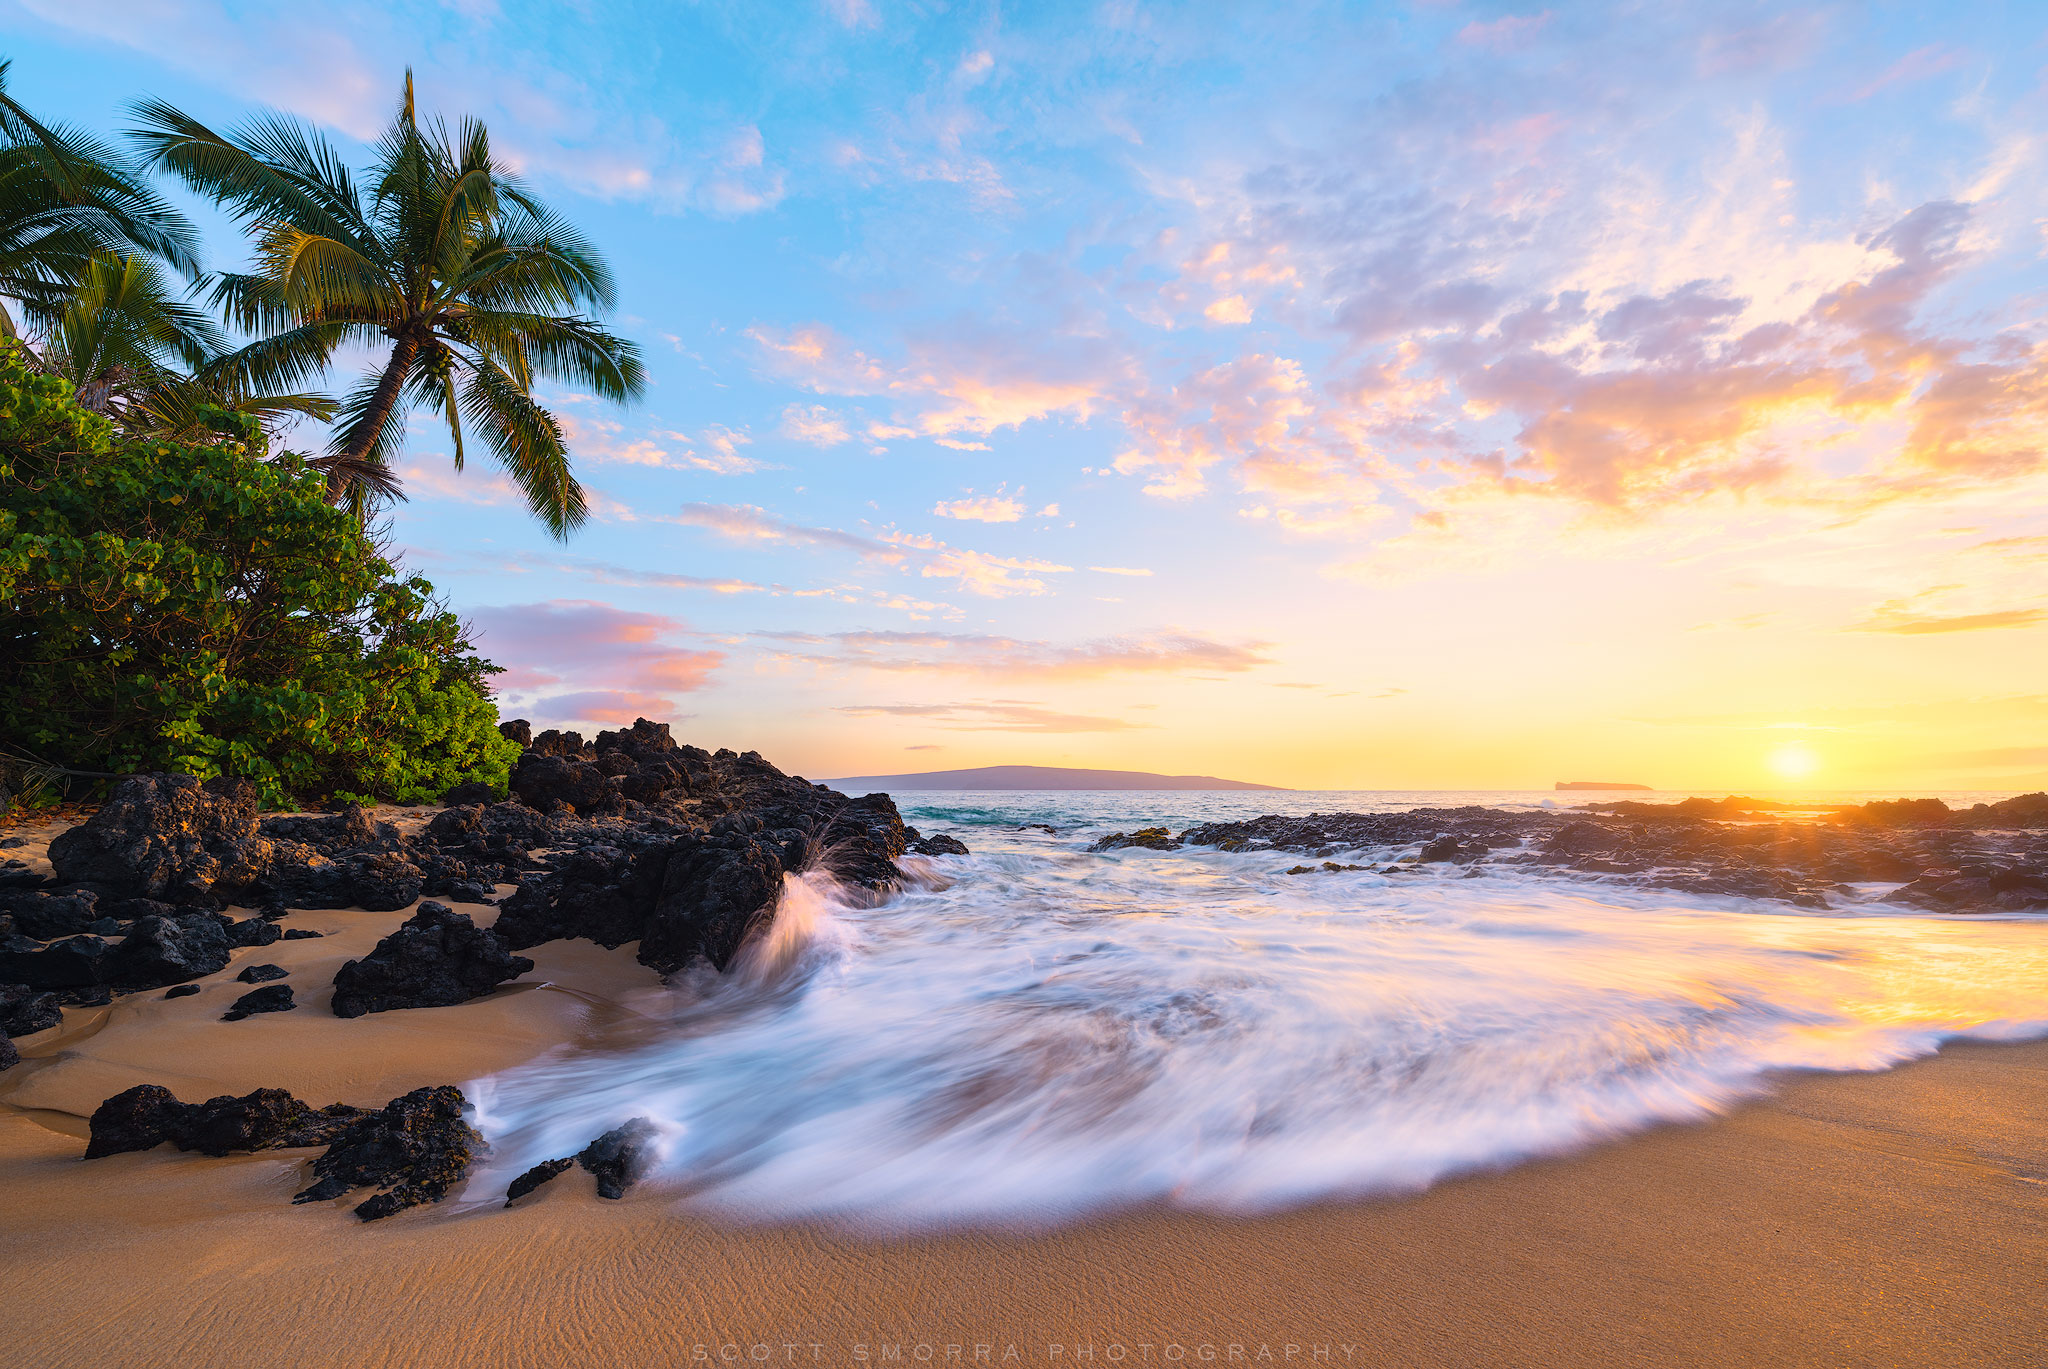 Gentle sunset light illuminates coconut palm trees and rocks at a secluded beach in Maui, Hawaii.